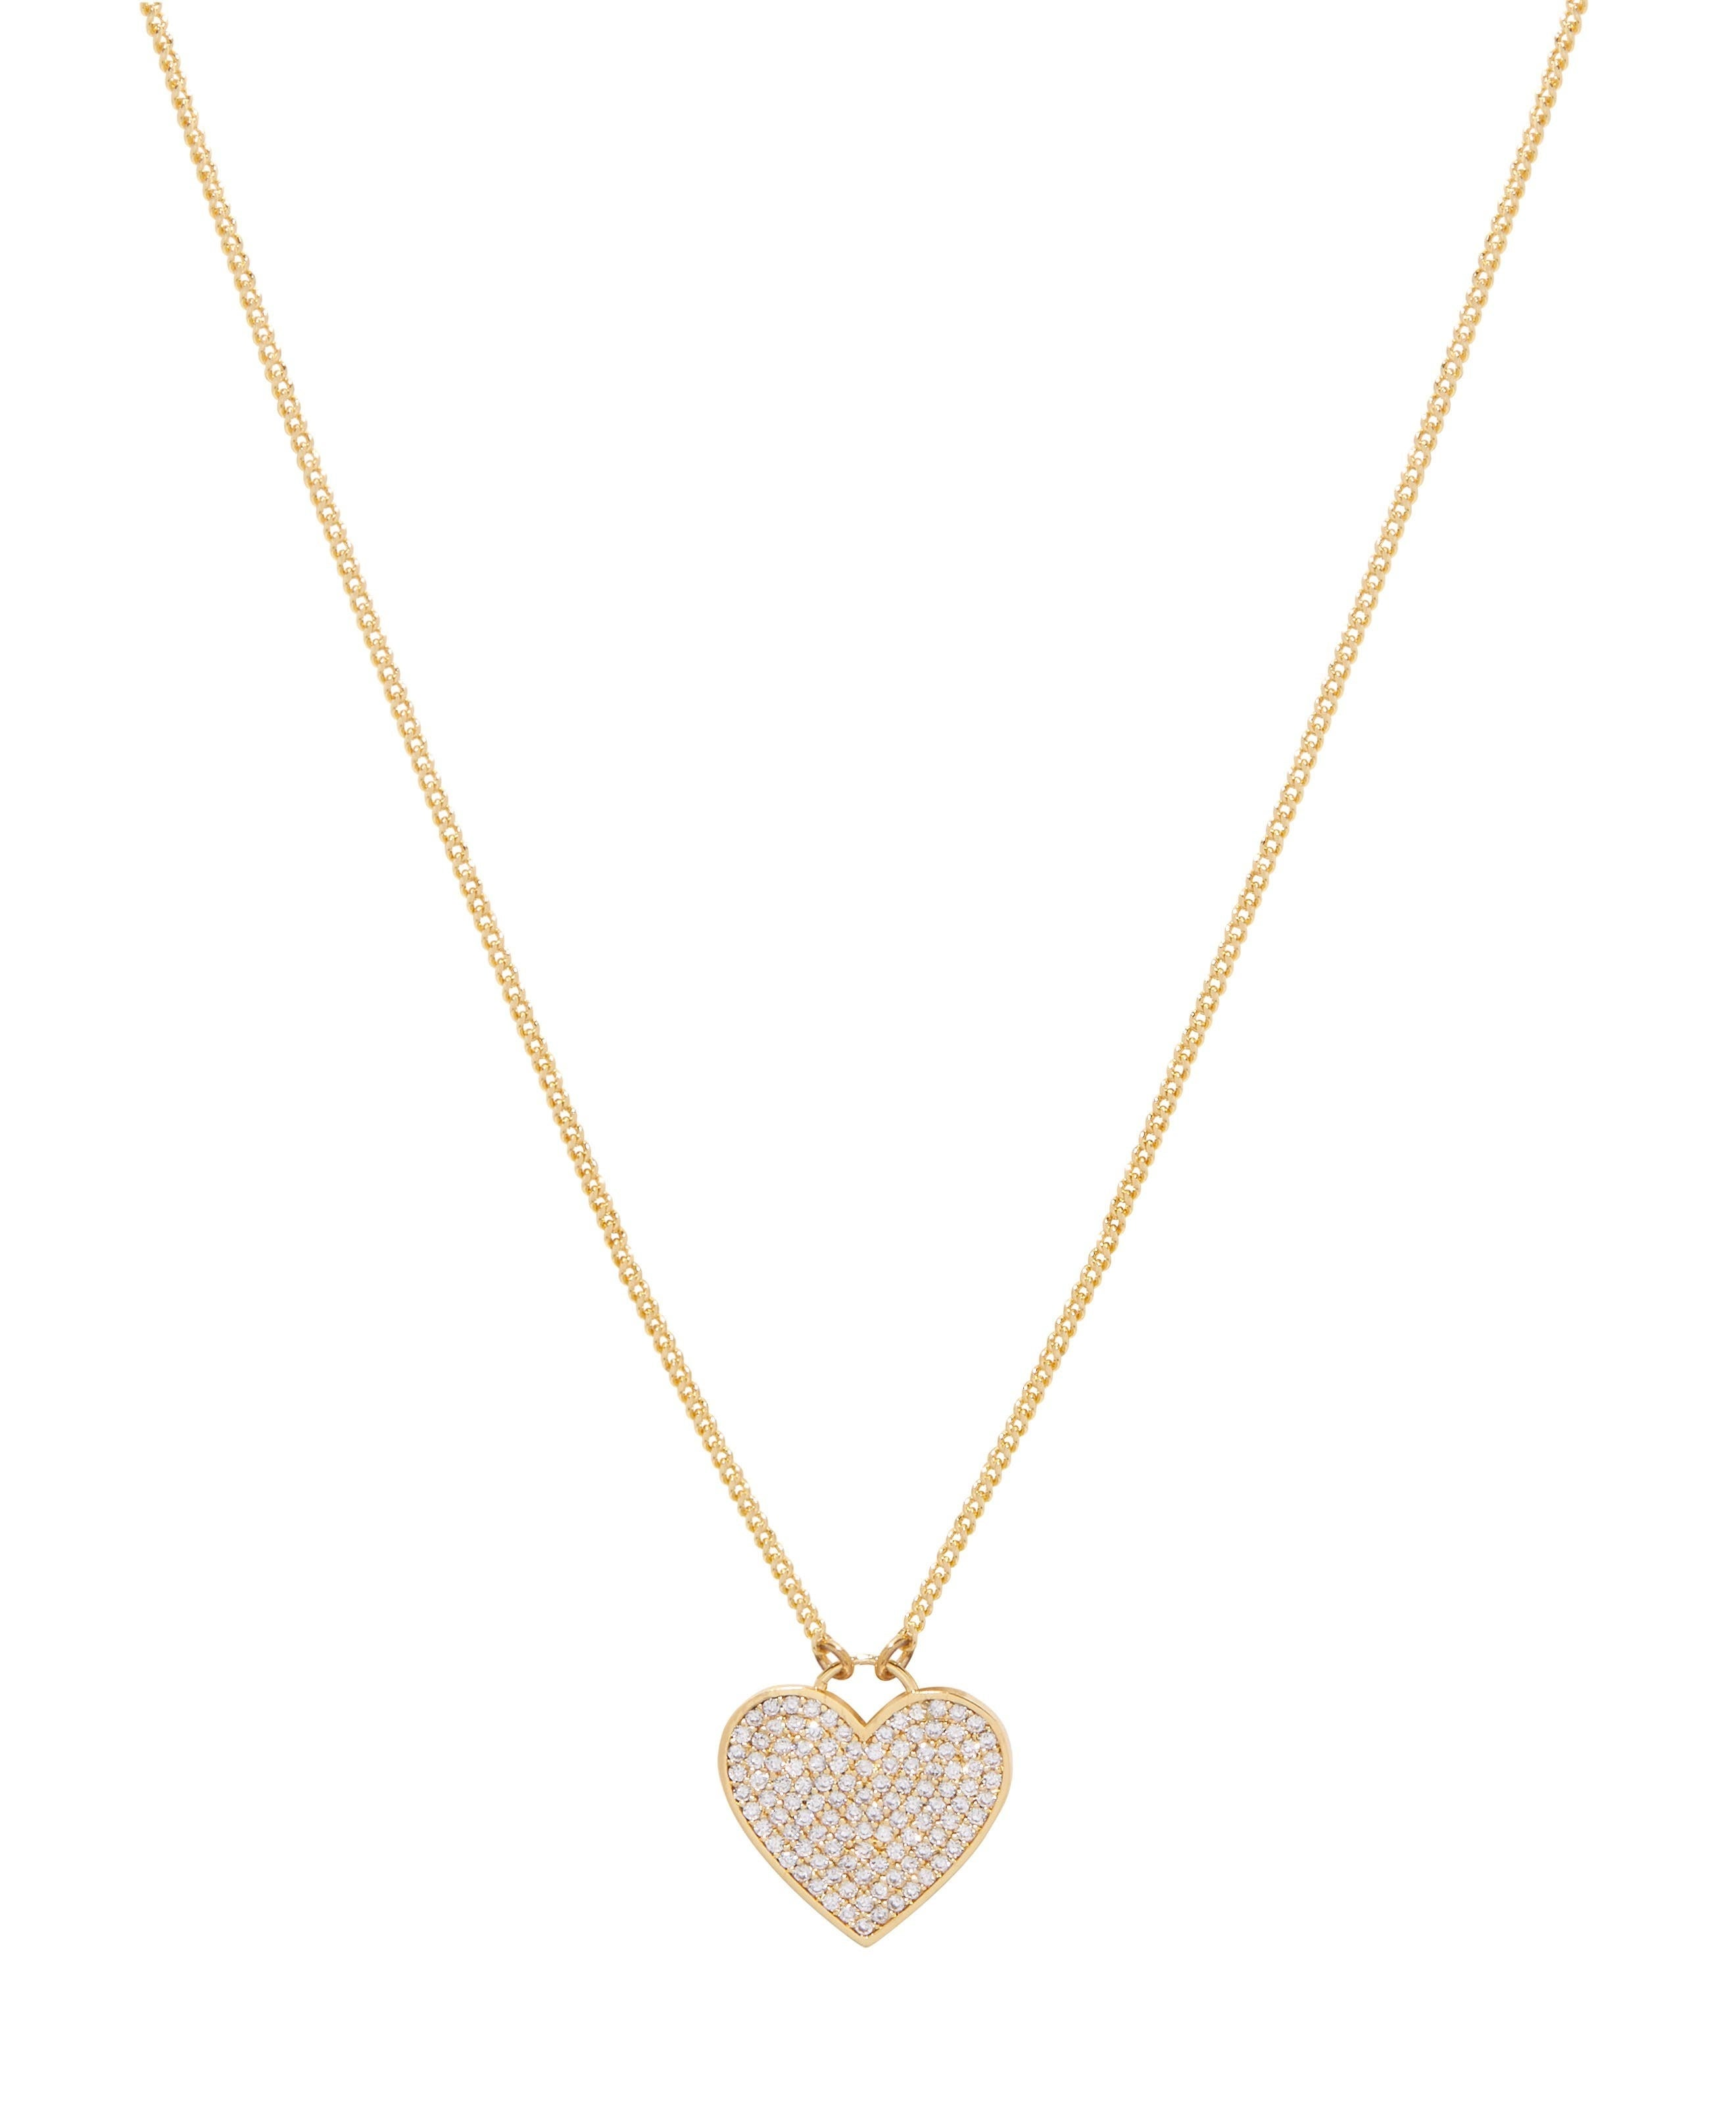 gold necklace with a shimmery heart pendant on the bottom